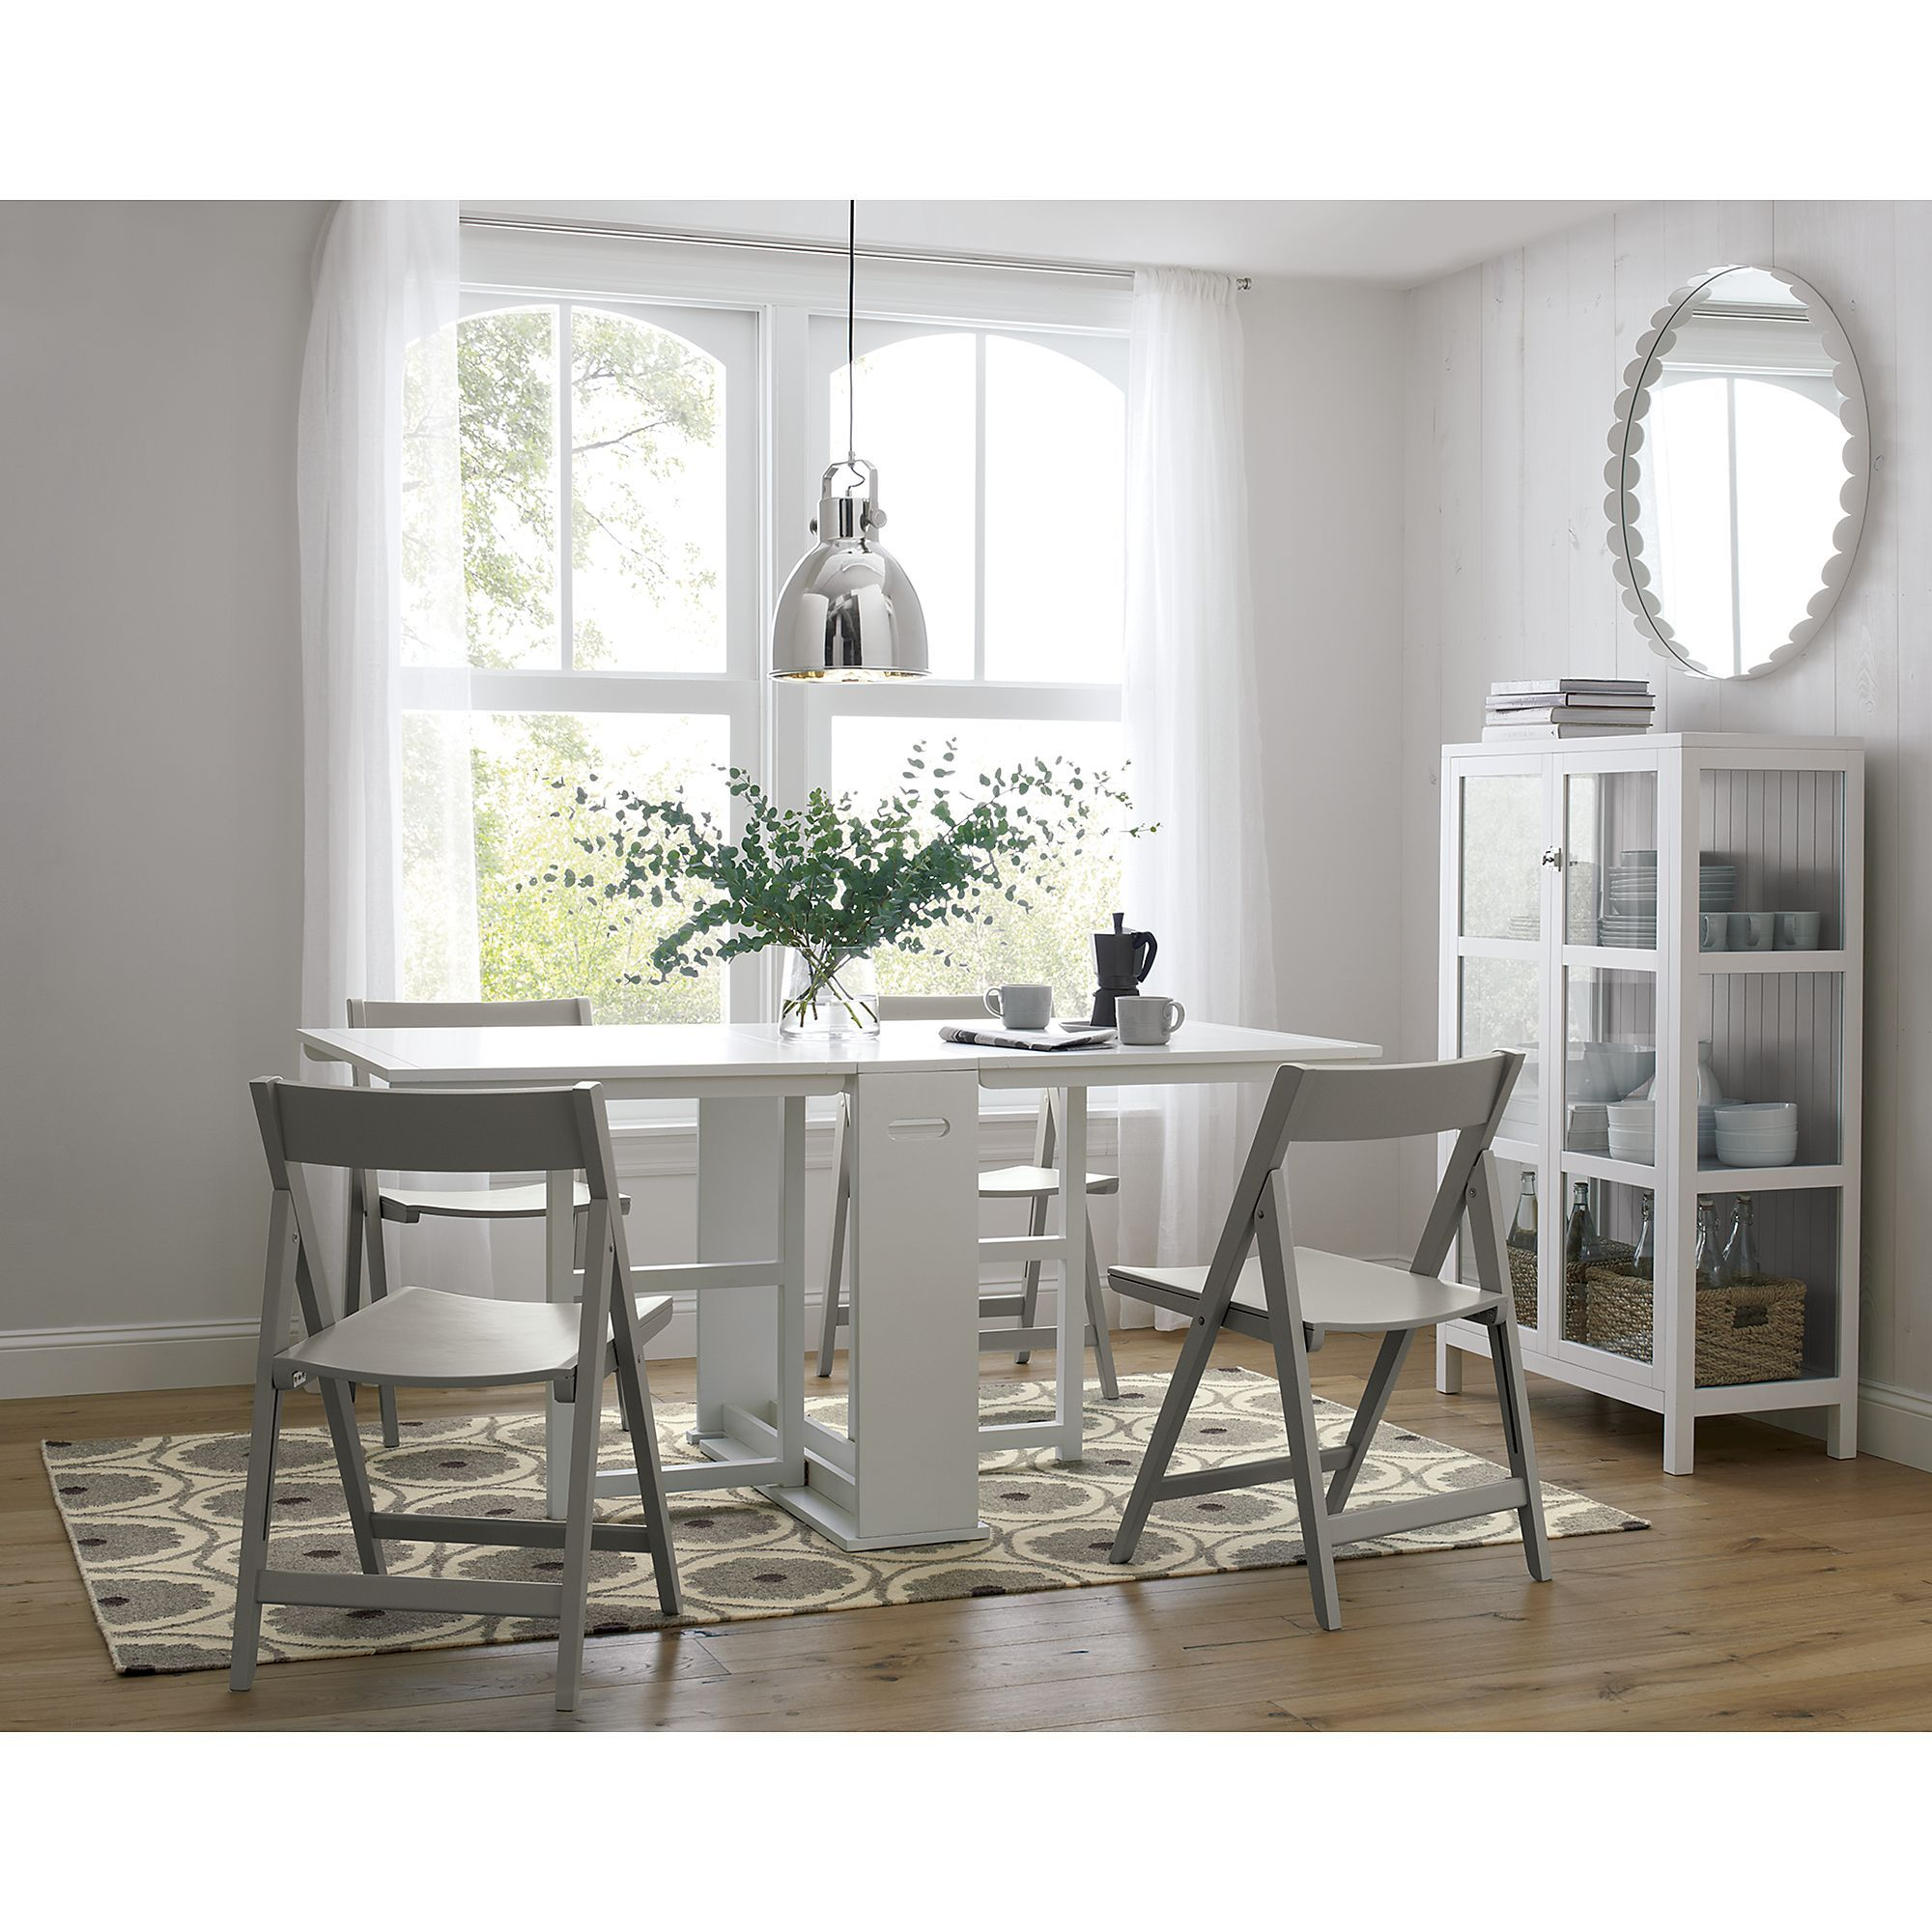 Metra extension dining table crate and barrel - 149 Hudson Pendant Crate And Barrel